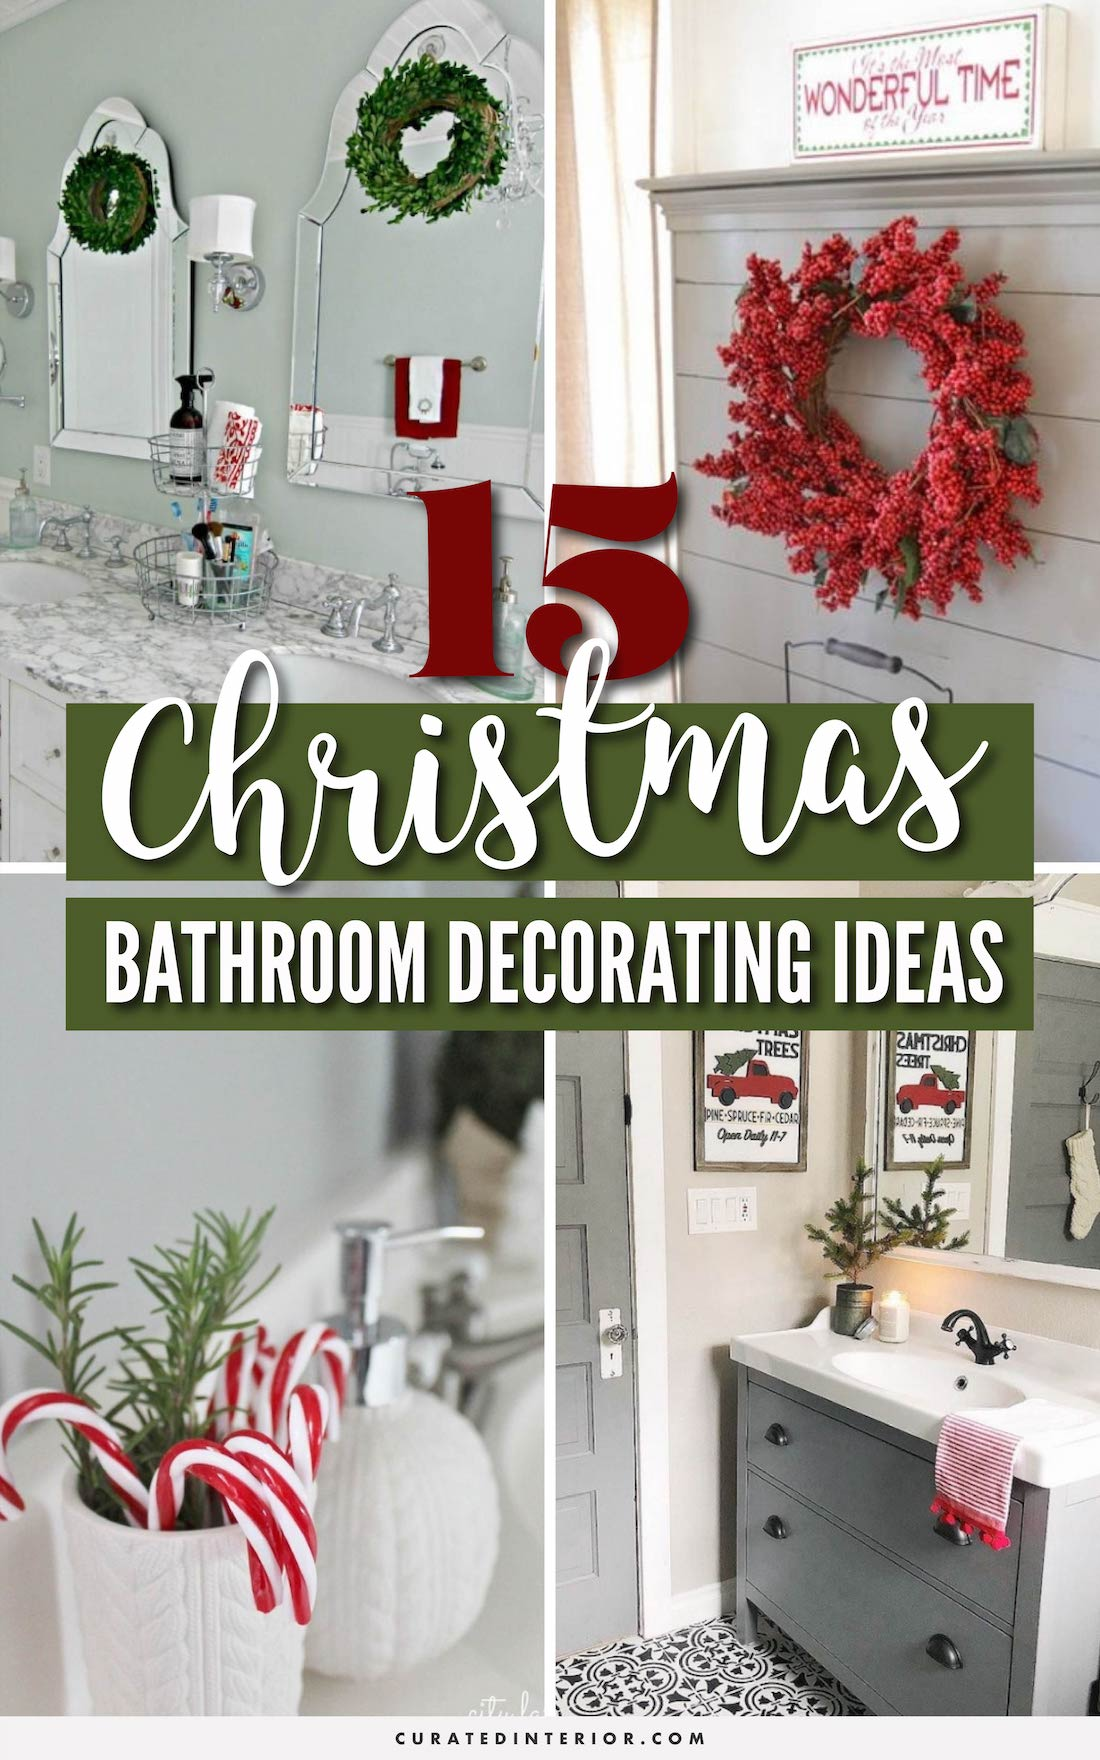 15 Brilliant Christmas Bathroom Decor Ideas! #BathroomDecor #ChristmasDecor #ChristmasHome #ChristmasBathroom